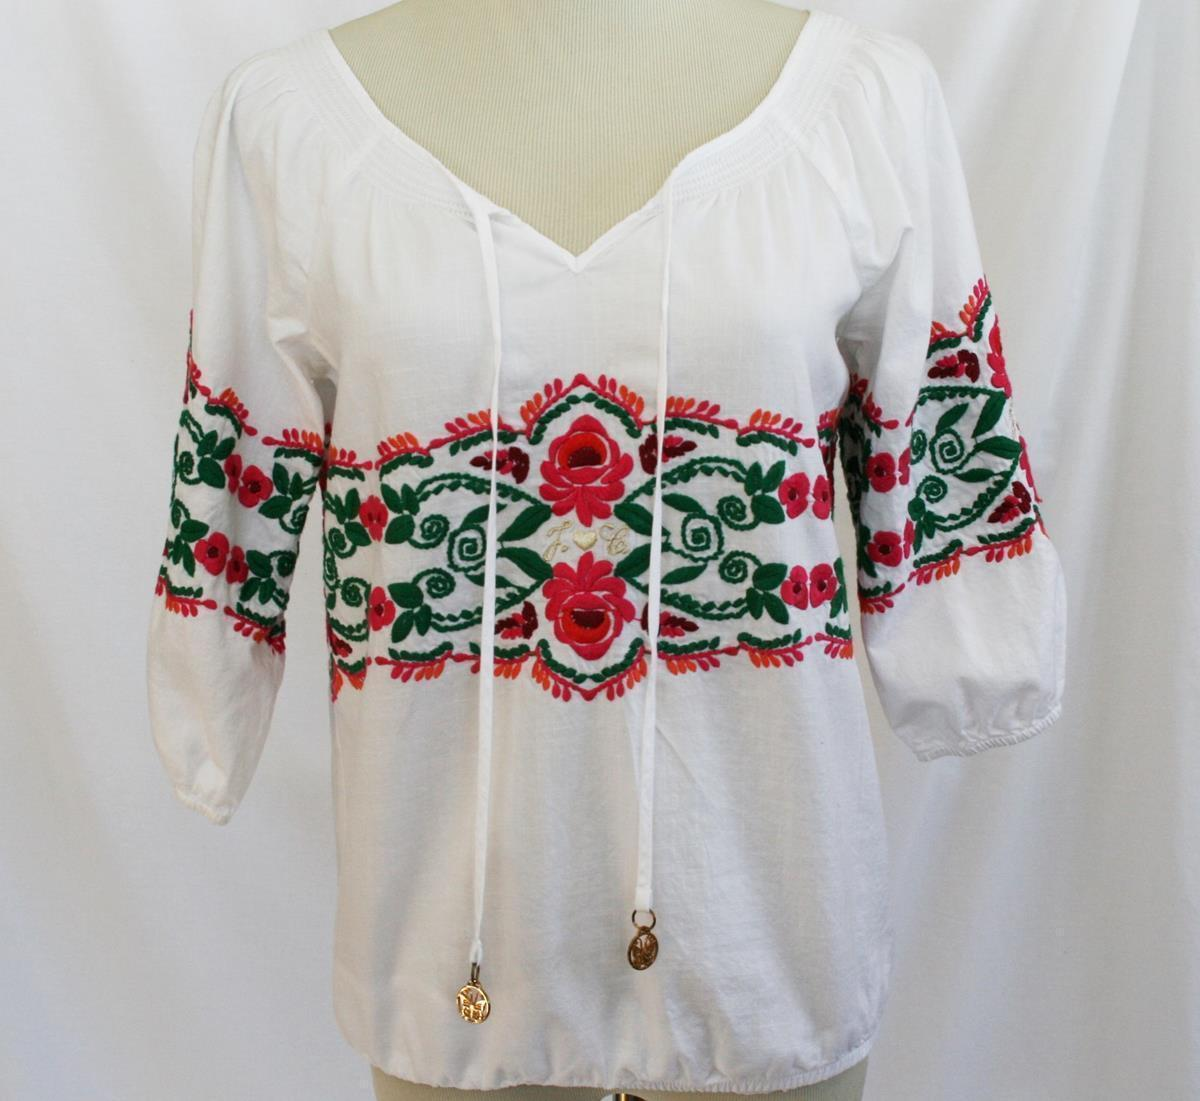 Juicy Couture White Cotton Embroidered Blouse Size 2 -EUC-   #1868